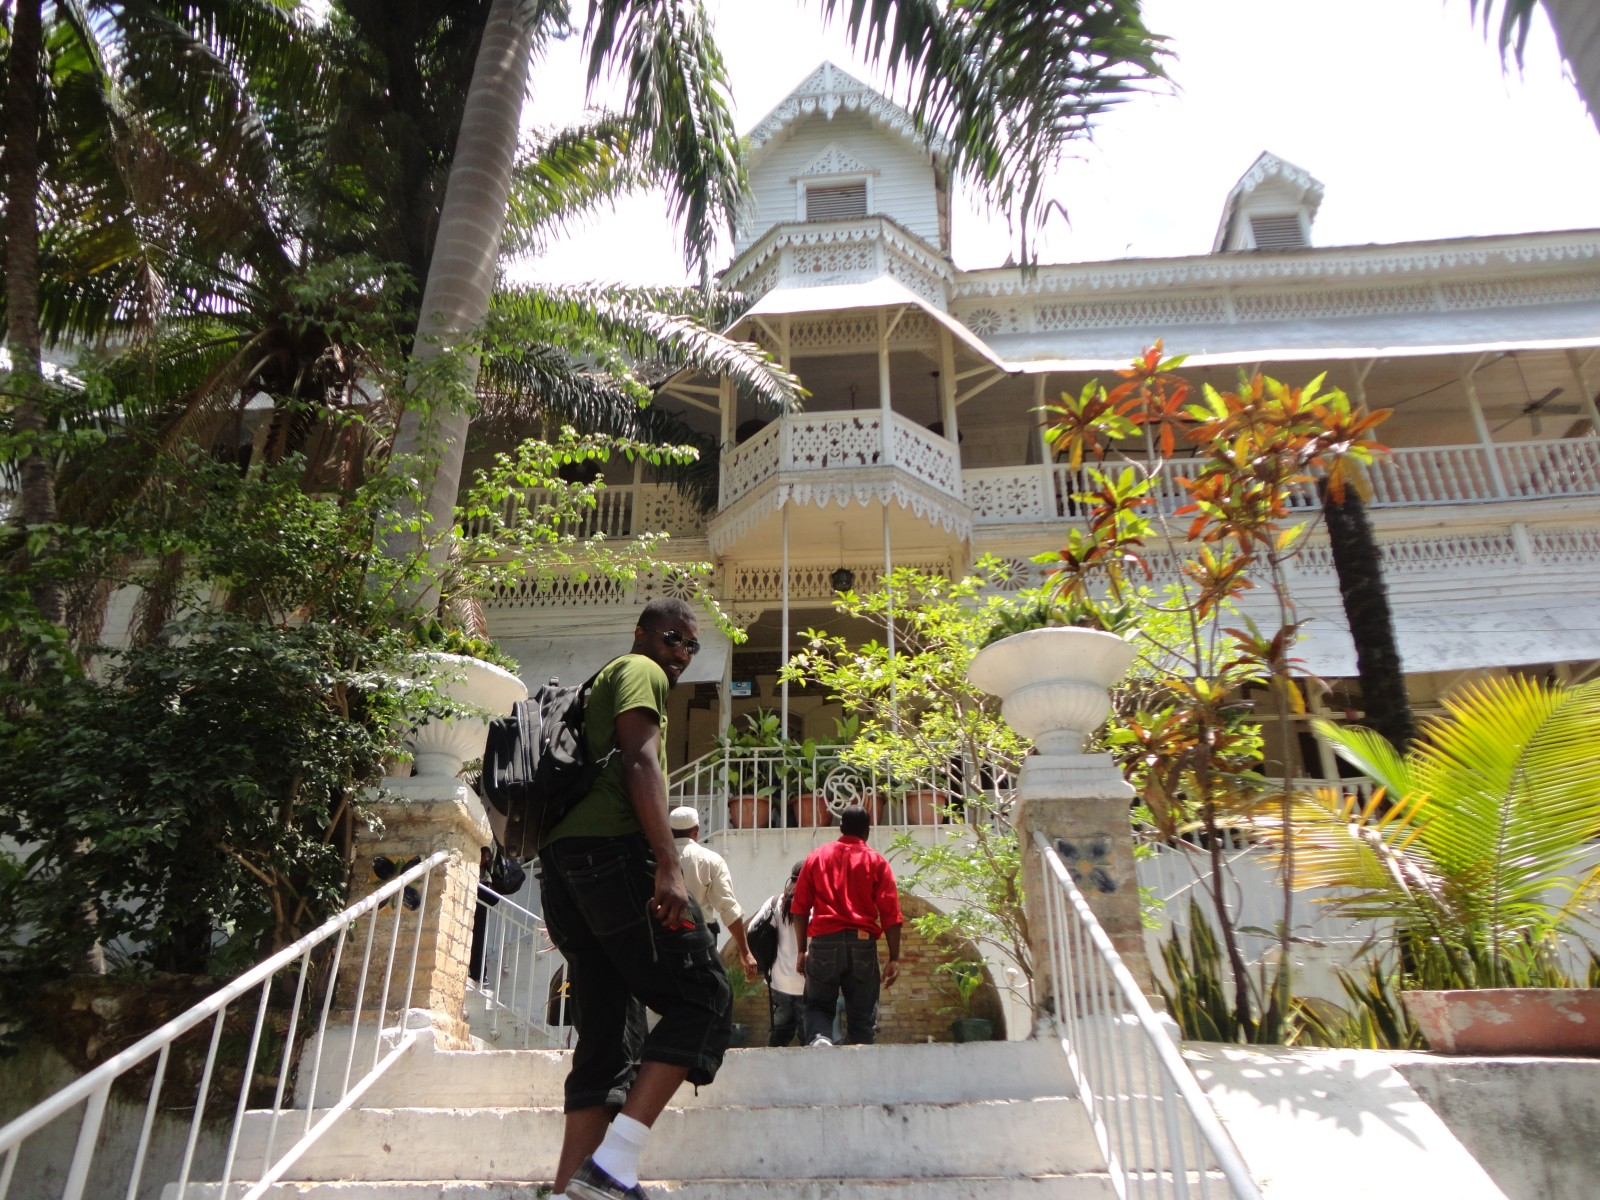 2013, Haiti, Cité Soleil, TWA. Third World Awareness, Hotel Oloffson, hotel